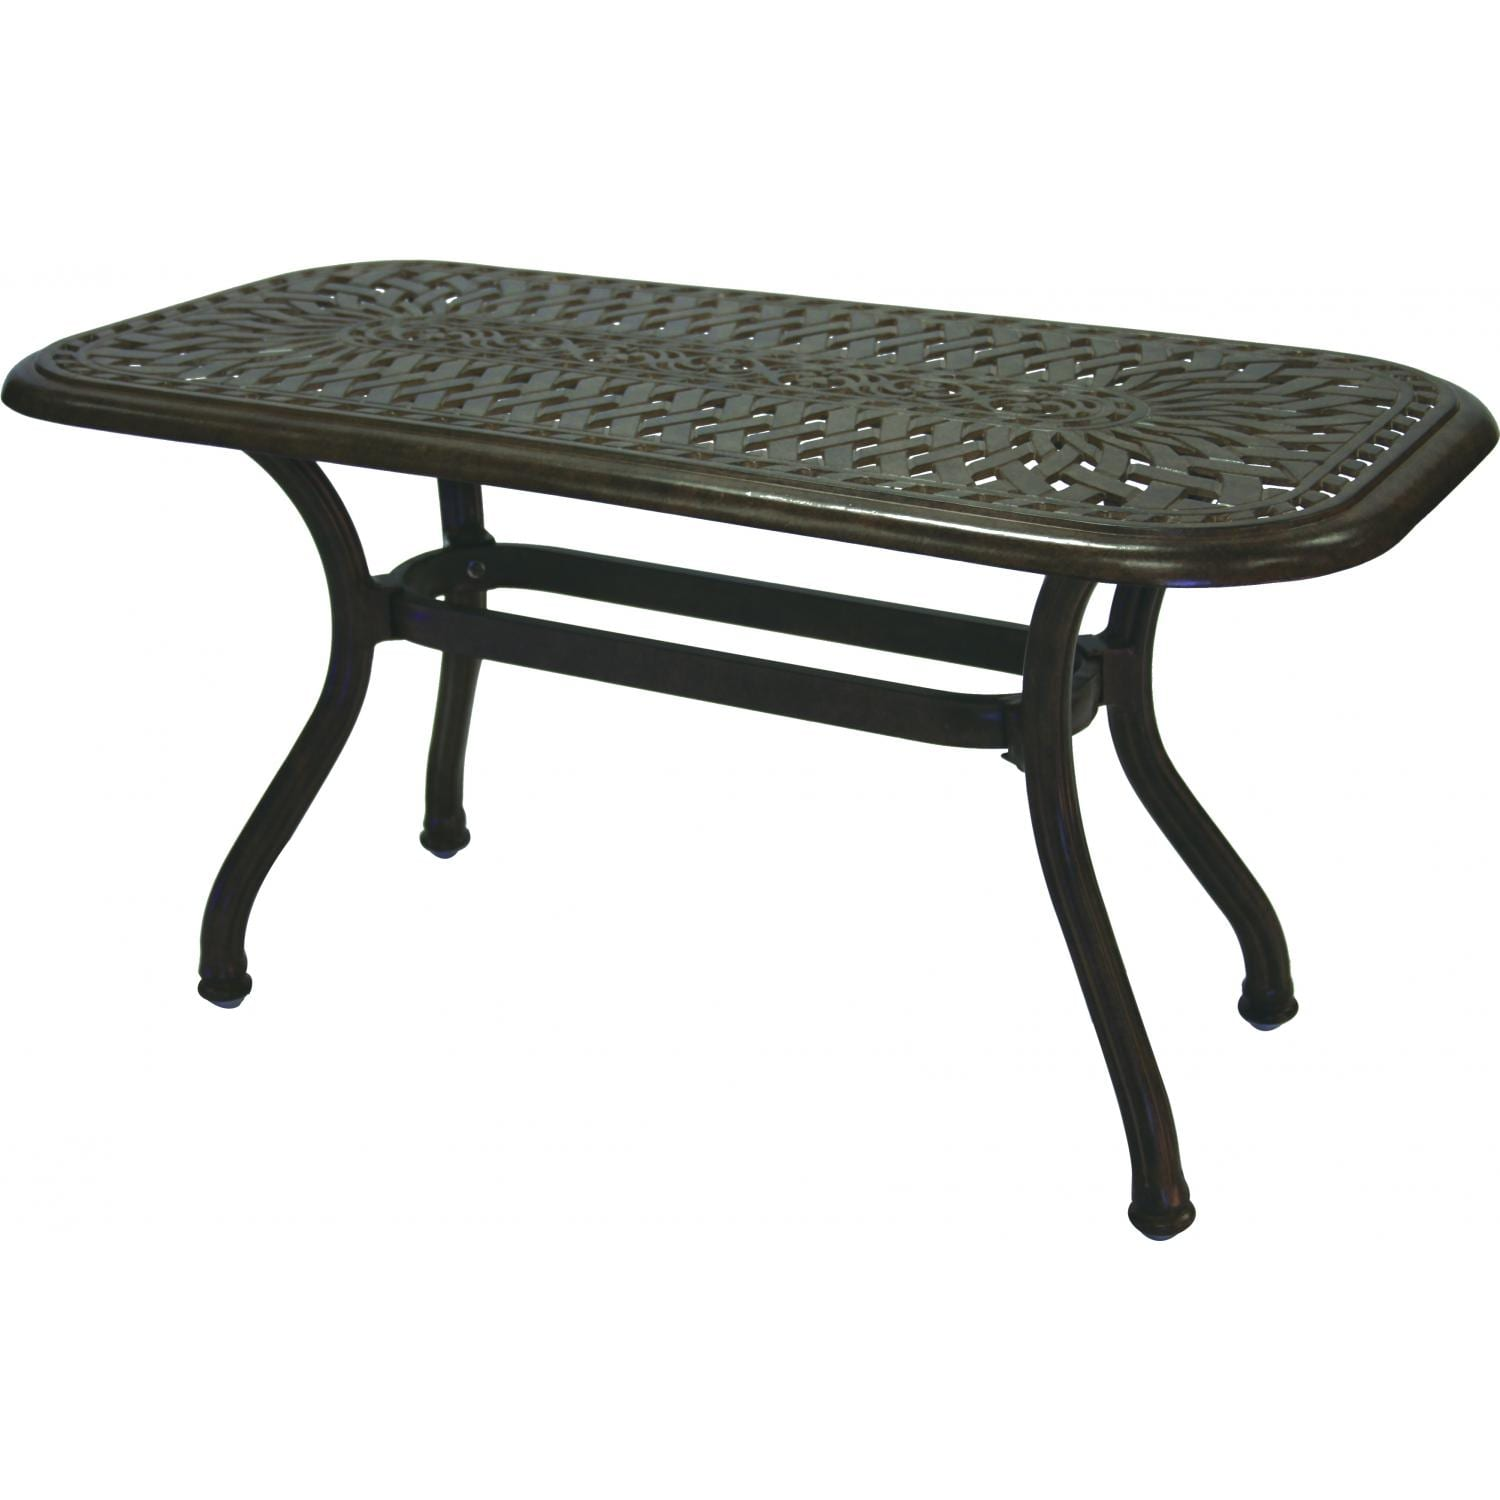 Darlee Series 60 Aluminum Patio Coffee Table